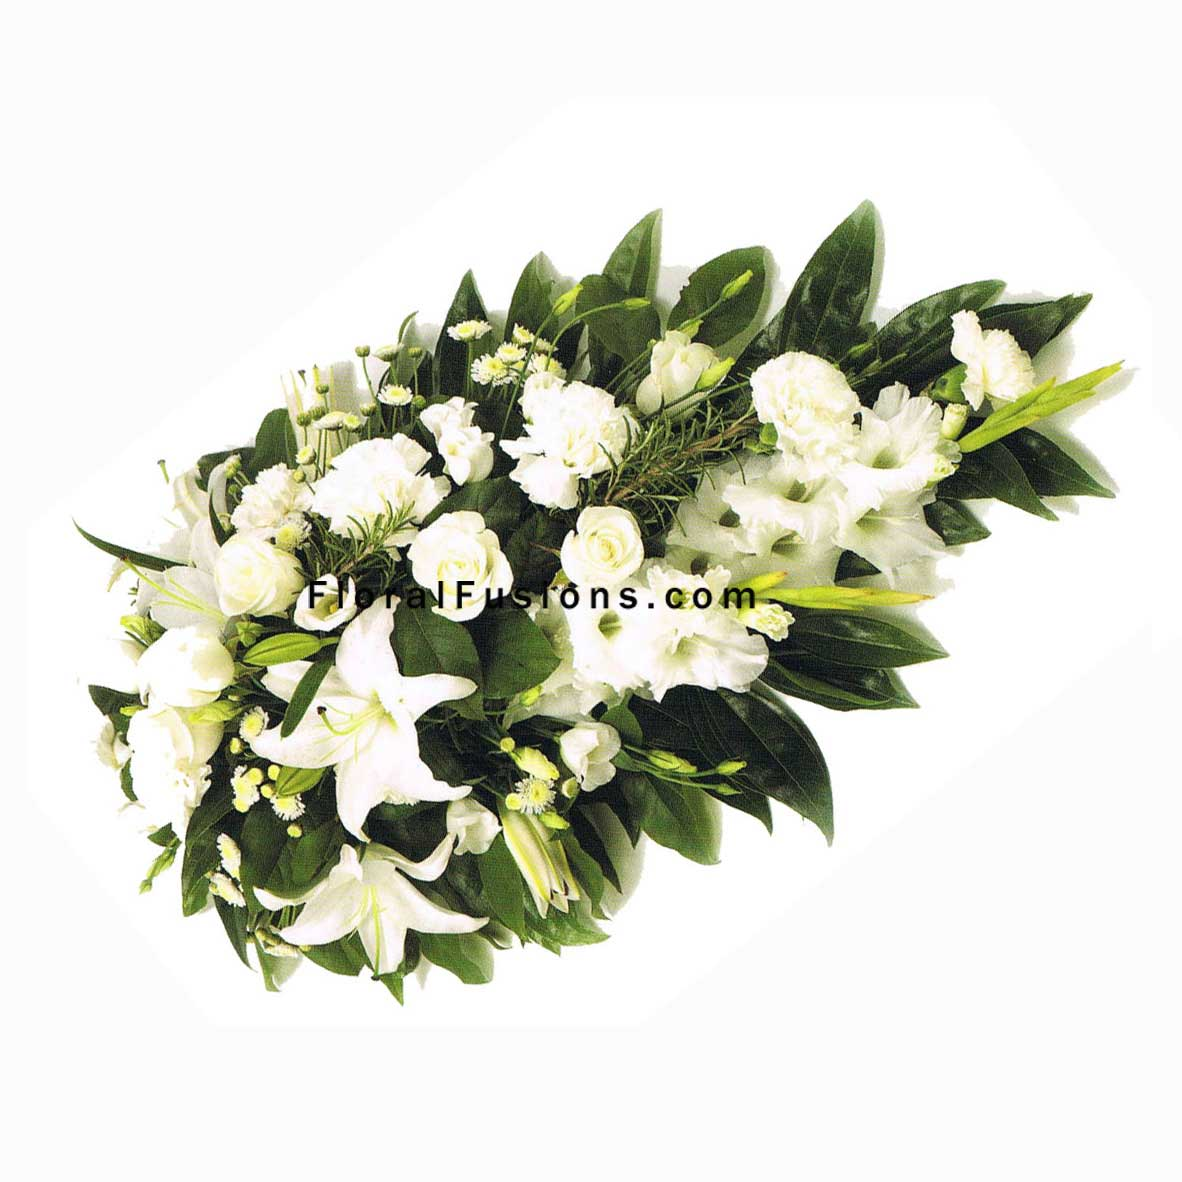 White Lily Roses Carnations Spray Funeral Flowers Leicester